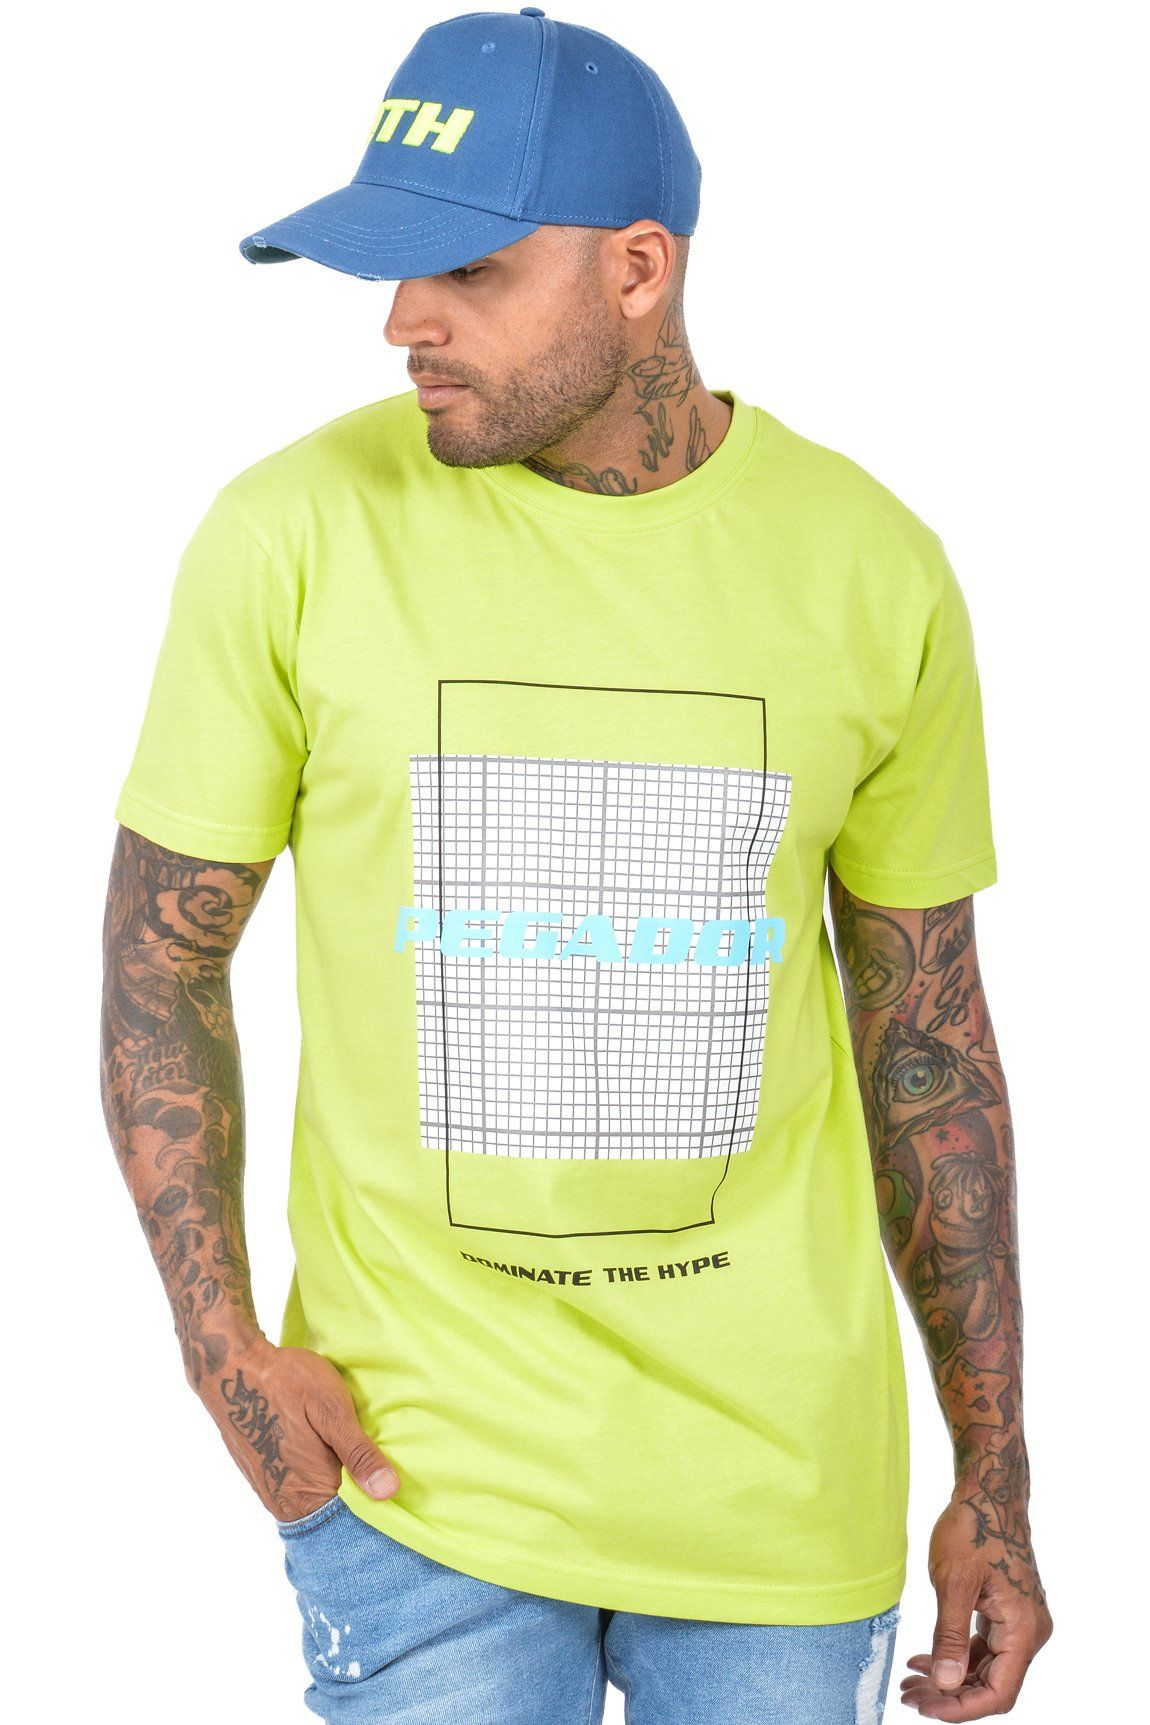 DTH T-SHIRT YELLOW - PEGADOR - Dominate the Hype